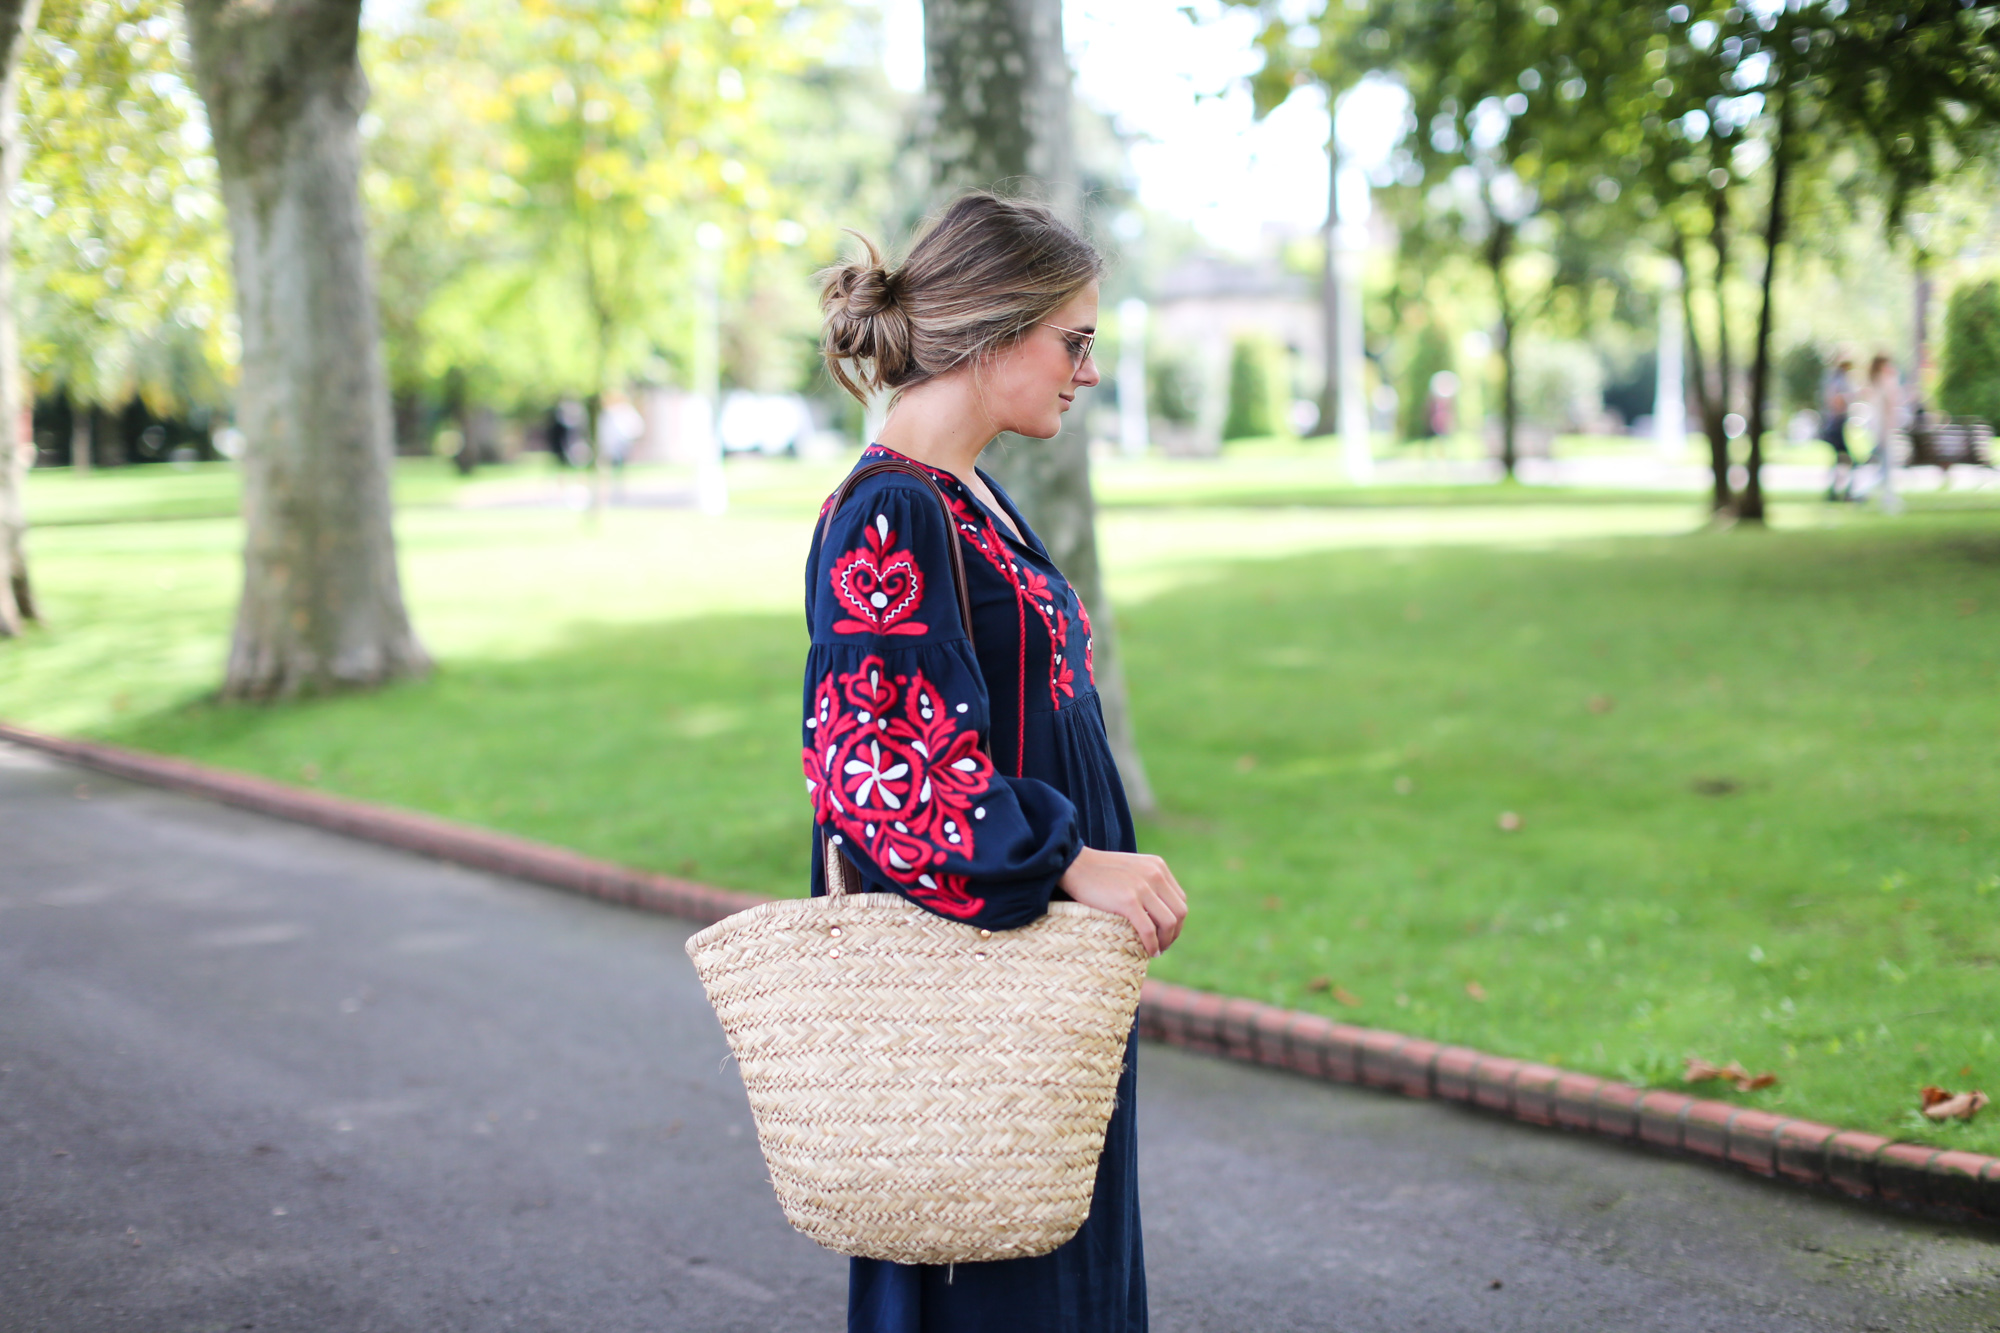 Clochet_streetstyle_fashionblogger_bilbao_zara_embroided_traditional_dress_strawbag-3